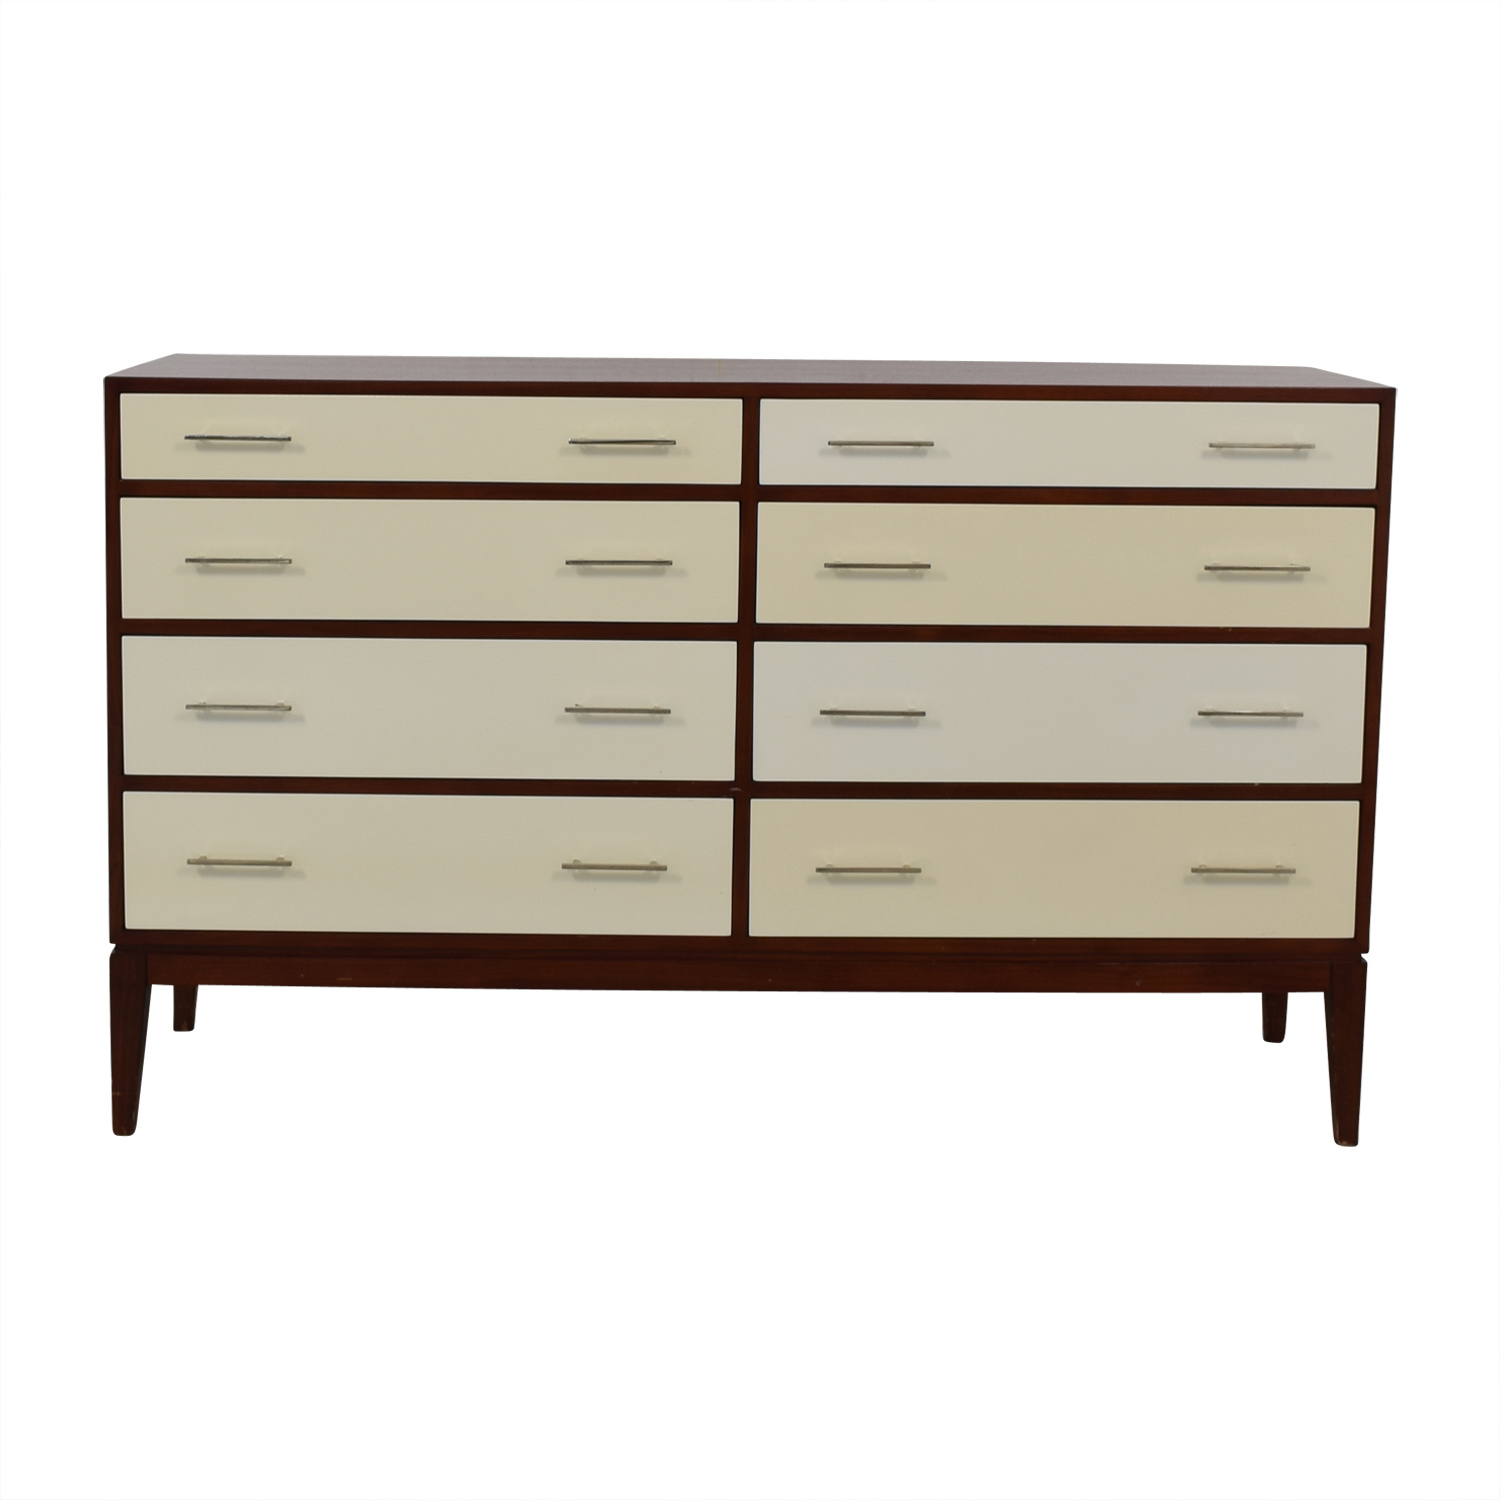 Mitchell Gold + Bob Williams 8 Drawer Dresser Mitchell Gold + Bob Williams